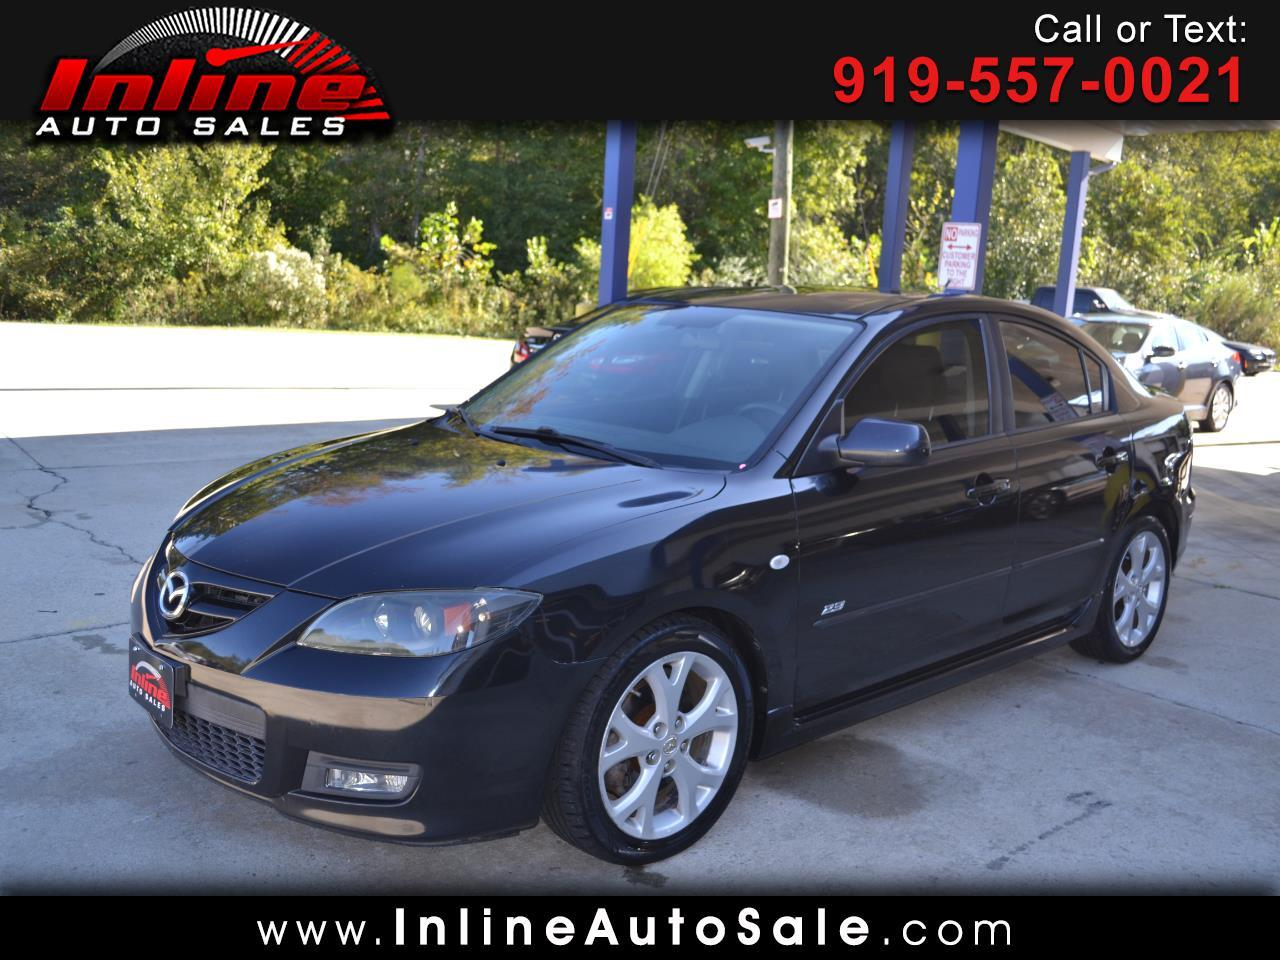 2007 Mazda MAZDA3 4dr Sdn Manual s Touring